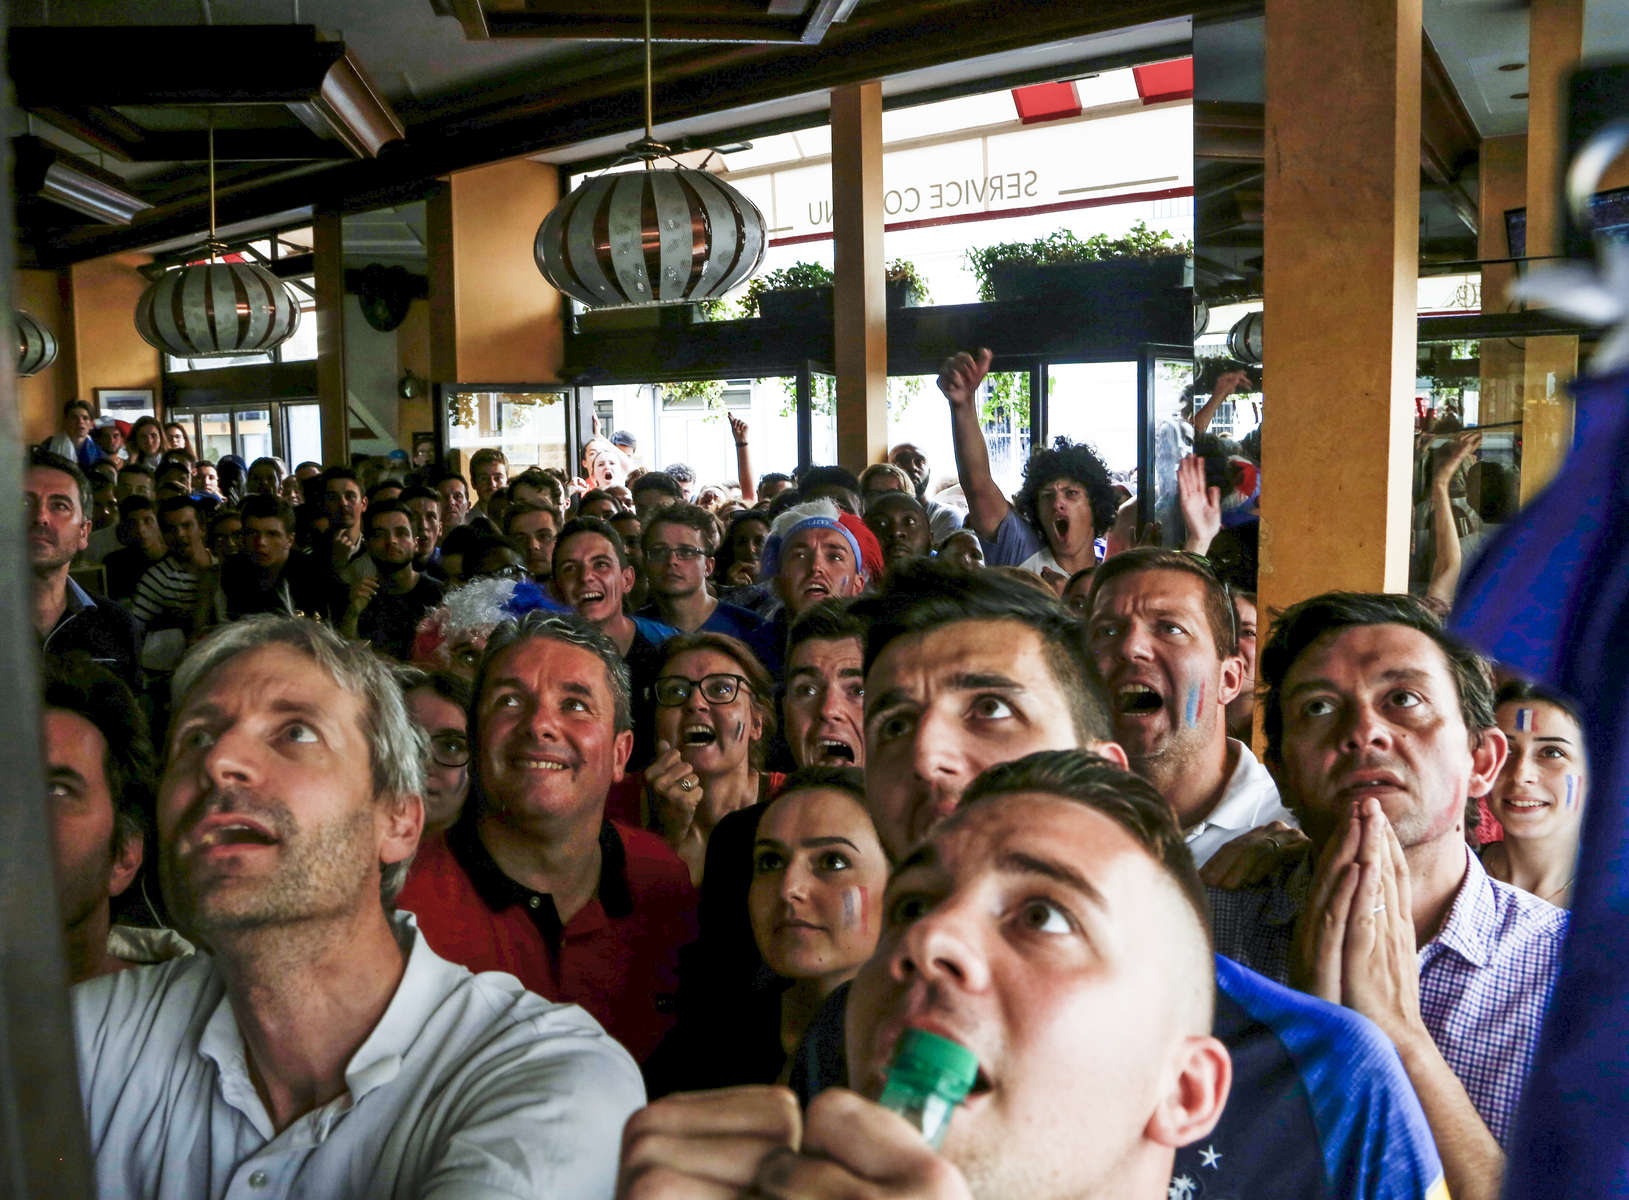 Supporters watch the World Cup Soccer final on the TV of a bar, on July 15, 2018, in Paris France.On the historical Soccer World Cup final between France and Croatia, fans were invited to watch the game on giant screens set up in the Champs de Mars, in front of the Eiffel Tower in Paris. But this Fan Zone was full long before the start of the game, leaving thousand of supporters scrambling to find a place to watch the game close by. The nearby and usually quiet coffees and restaurants were quickly over flooded. But for the next two and a half hours, it did not matter to watch the game from the middle of the streets. Very few cars were circulating, because almost everyone in France was watching, or trying to watch the game.